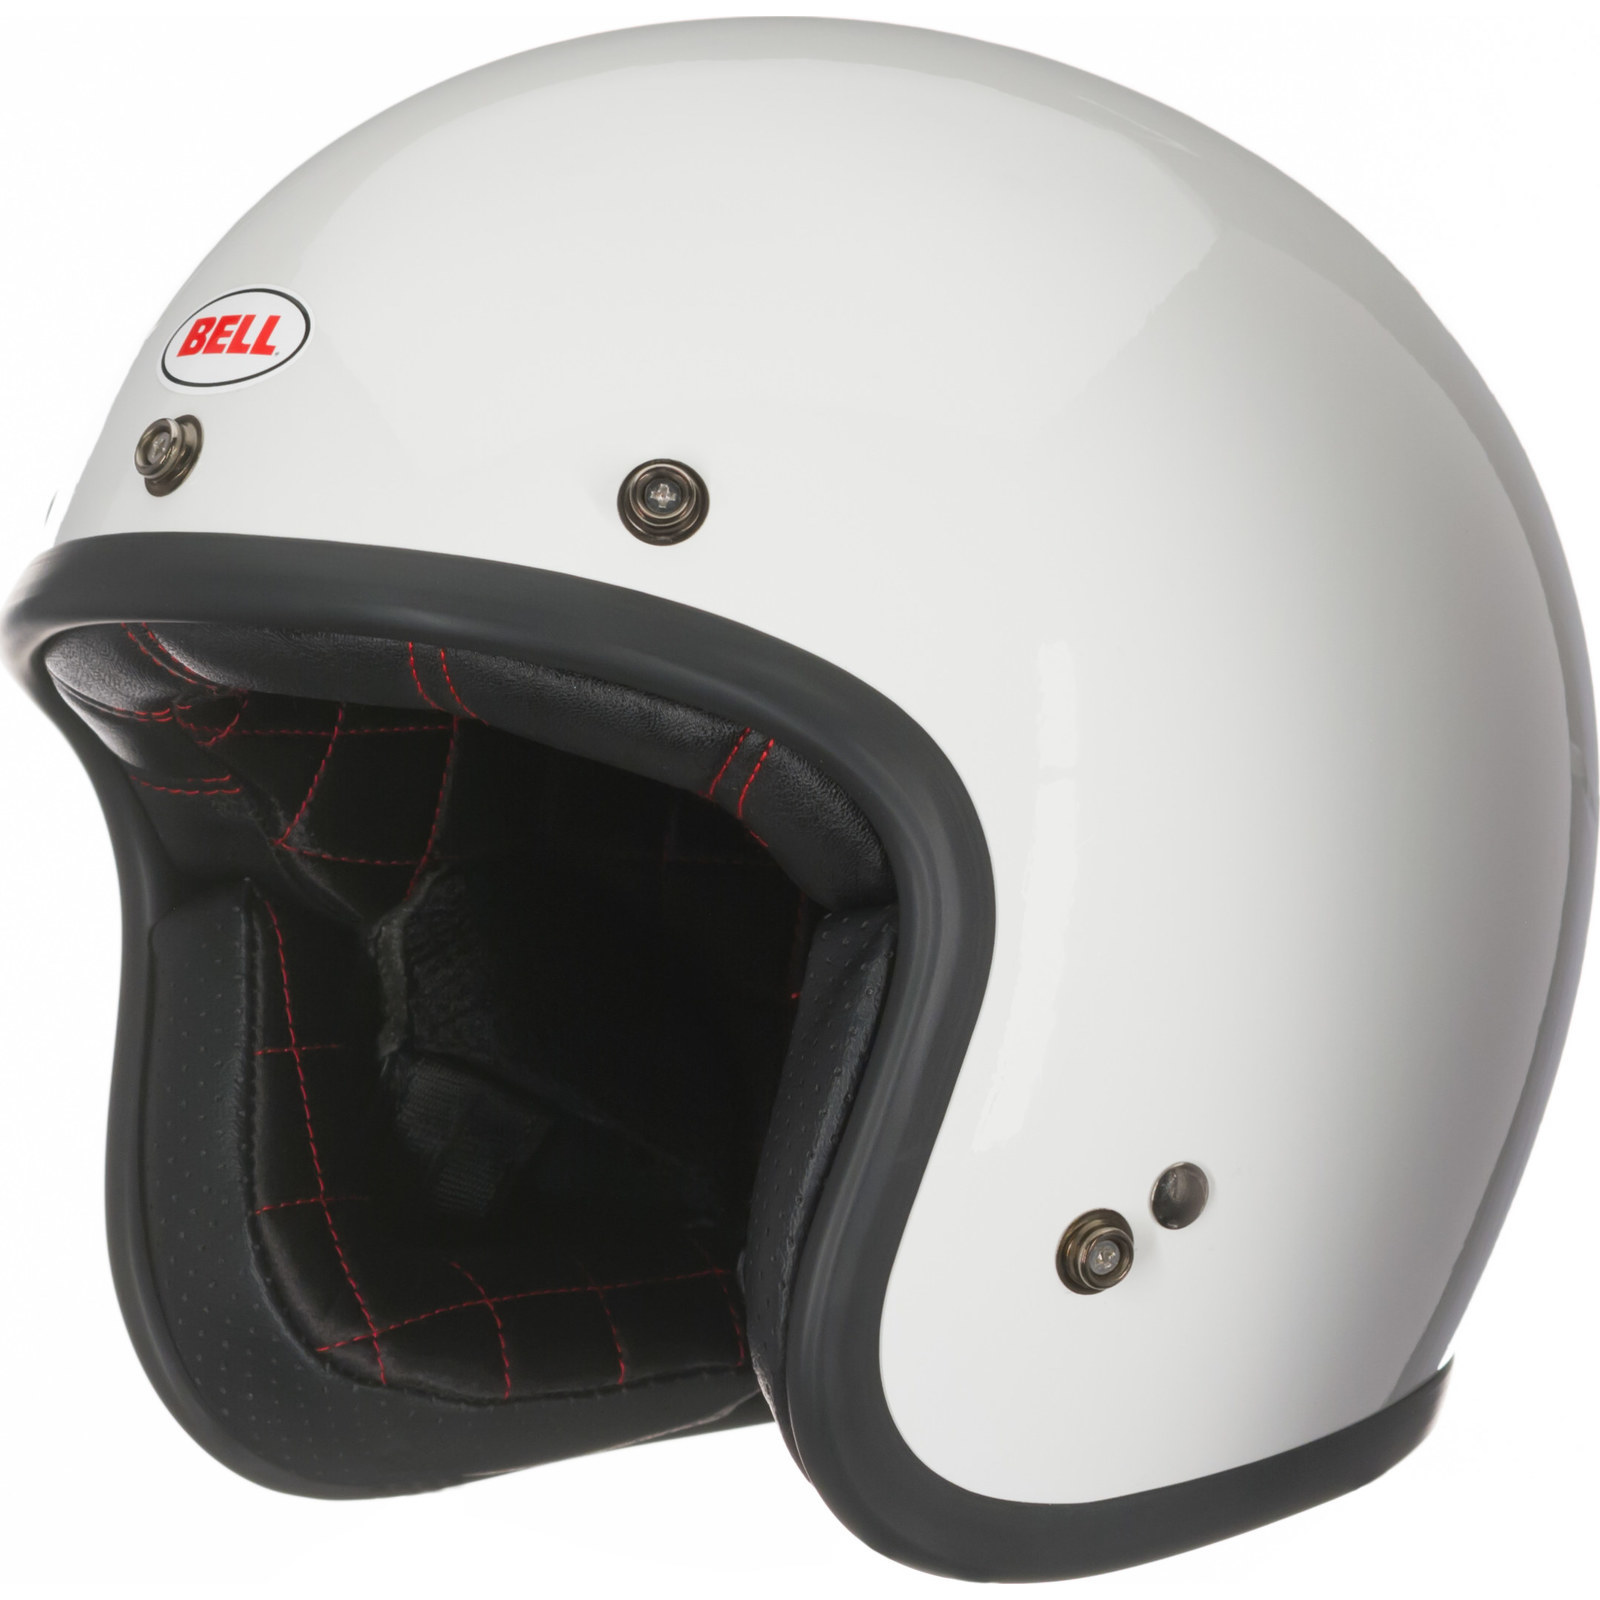 Vintage Open Face Motorcycle Helmets Uk Ash Cycles